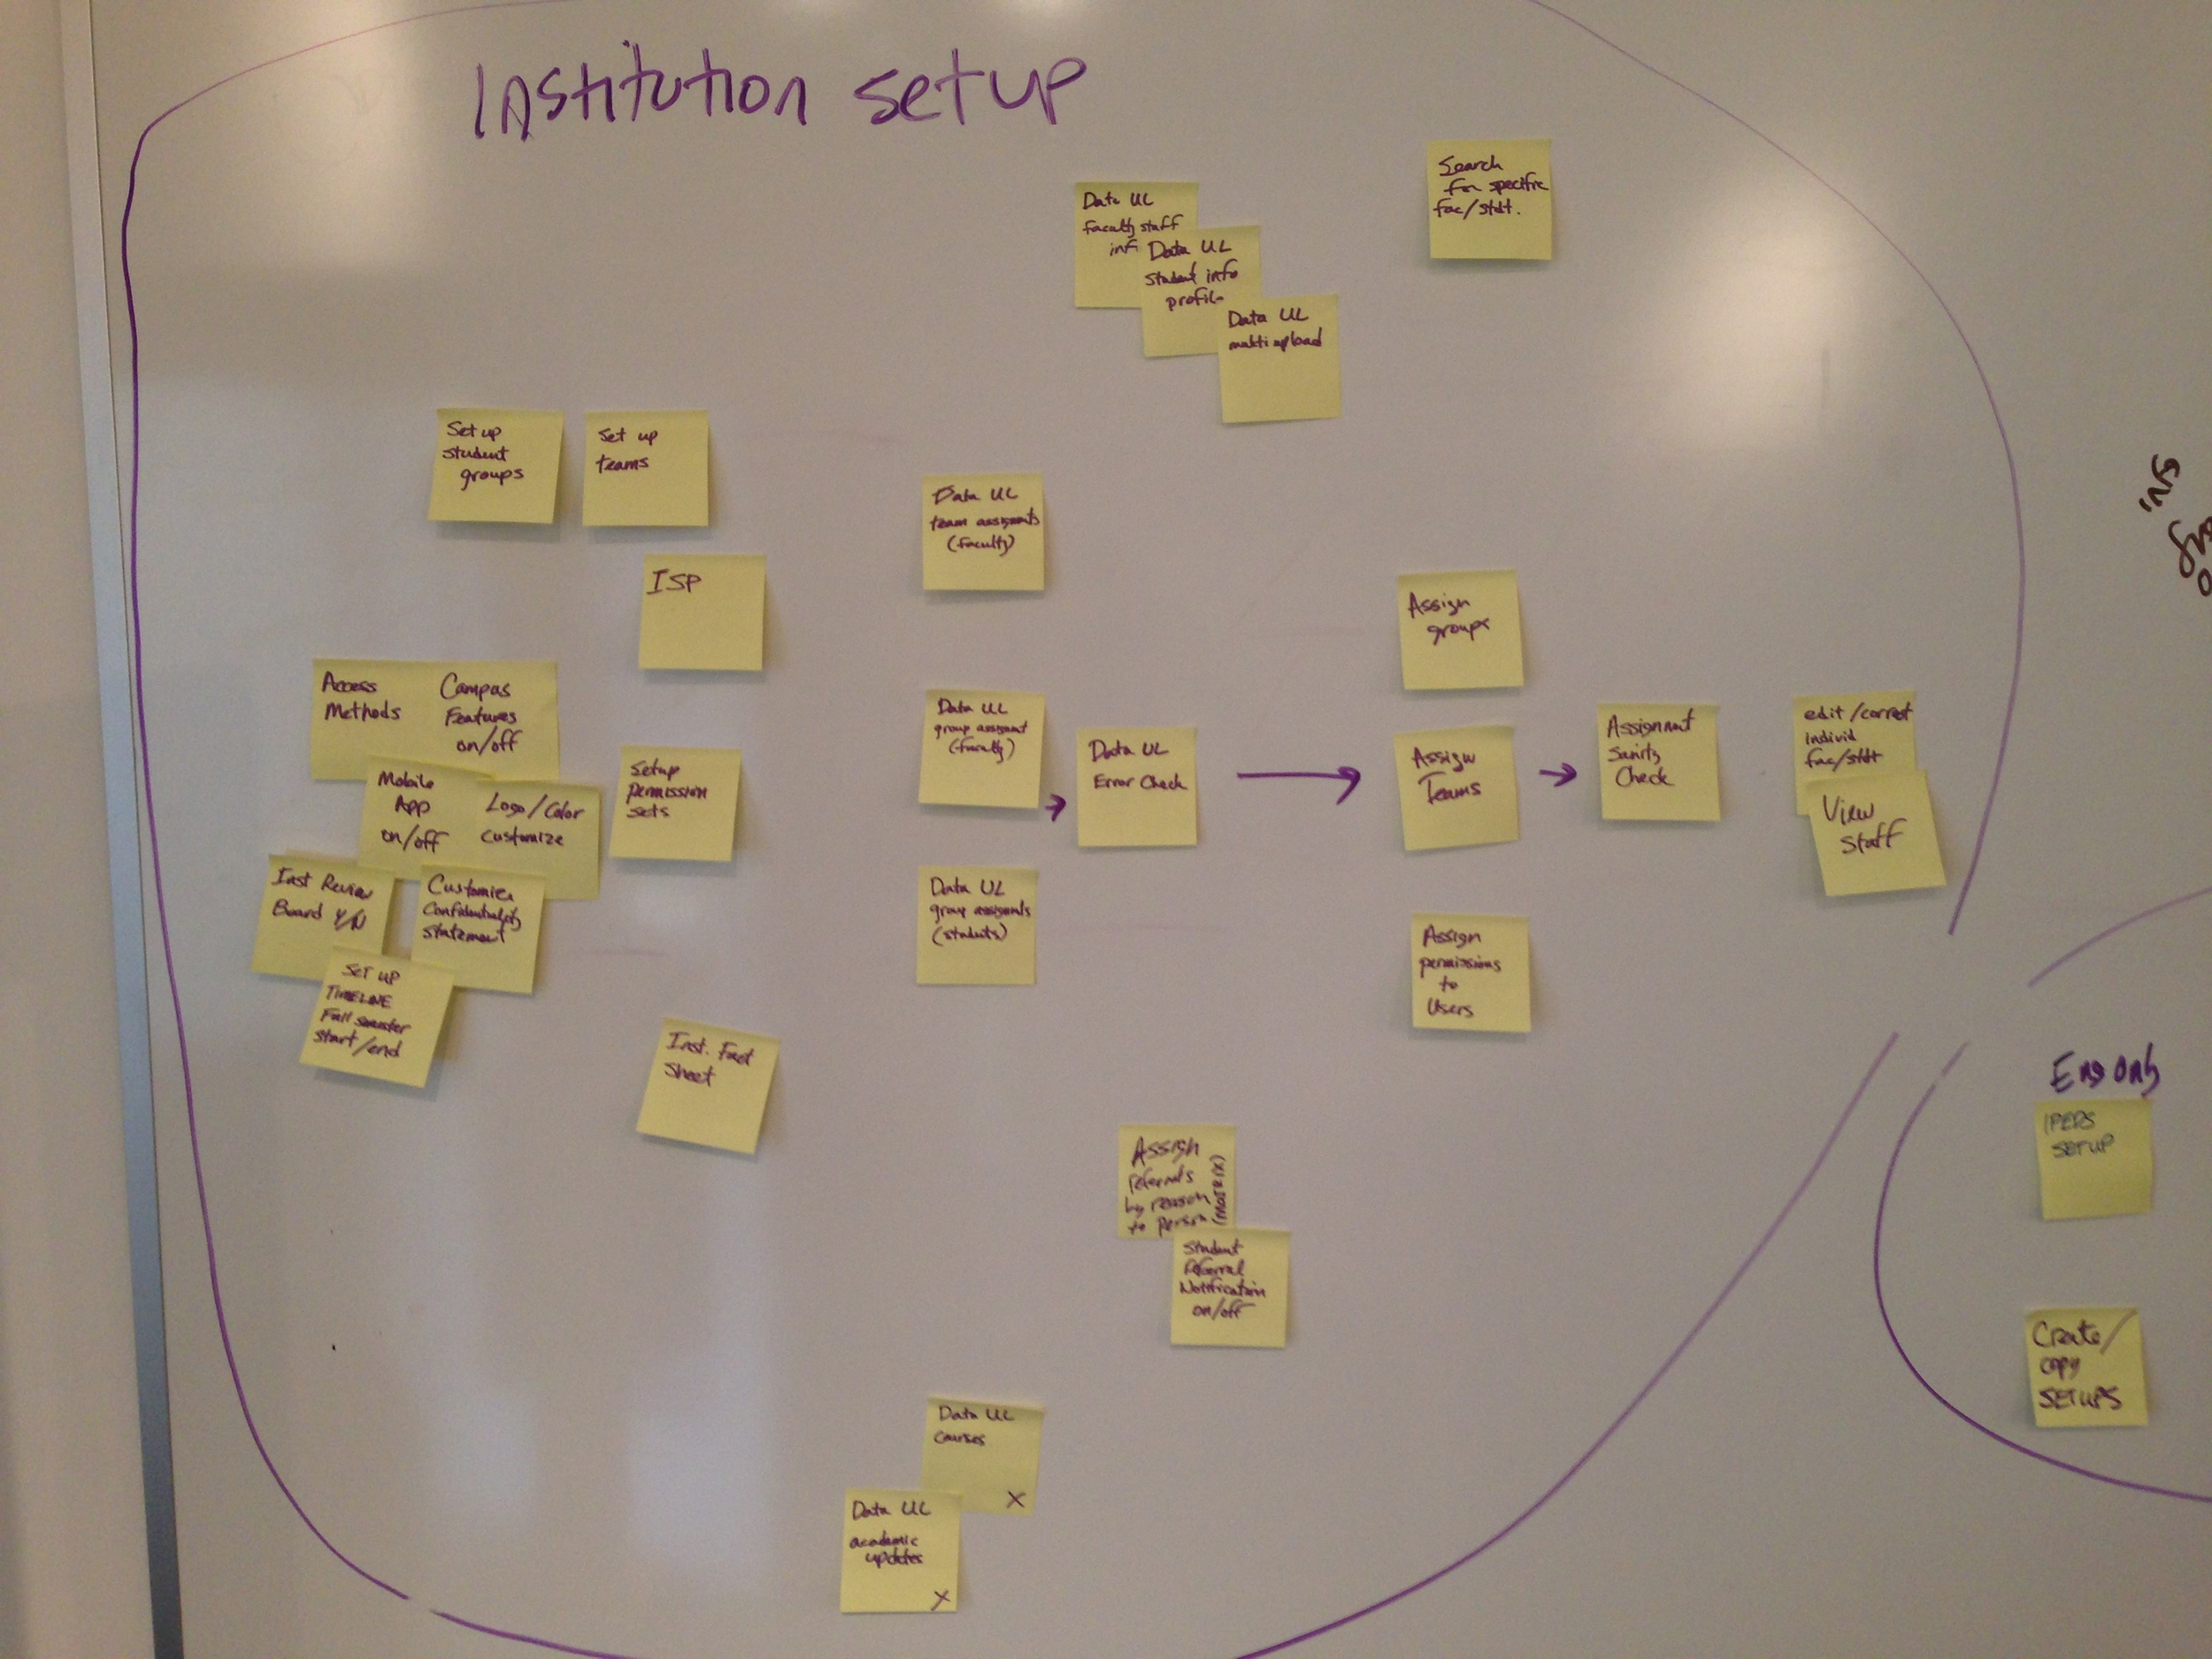 whiteboard institution setup stickies.jpg